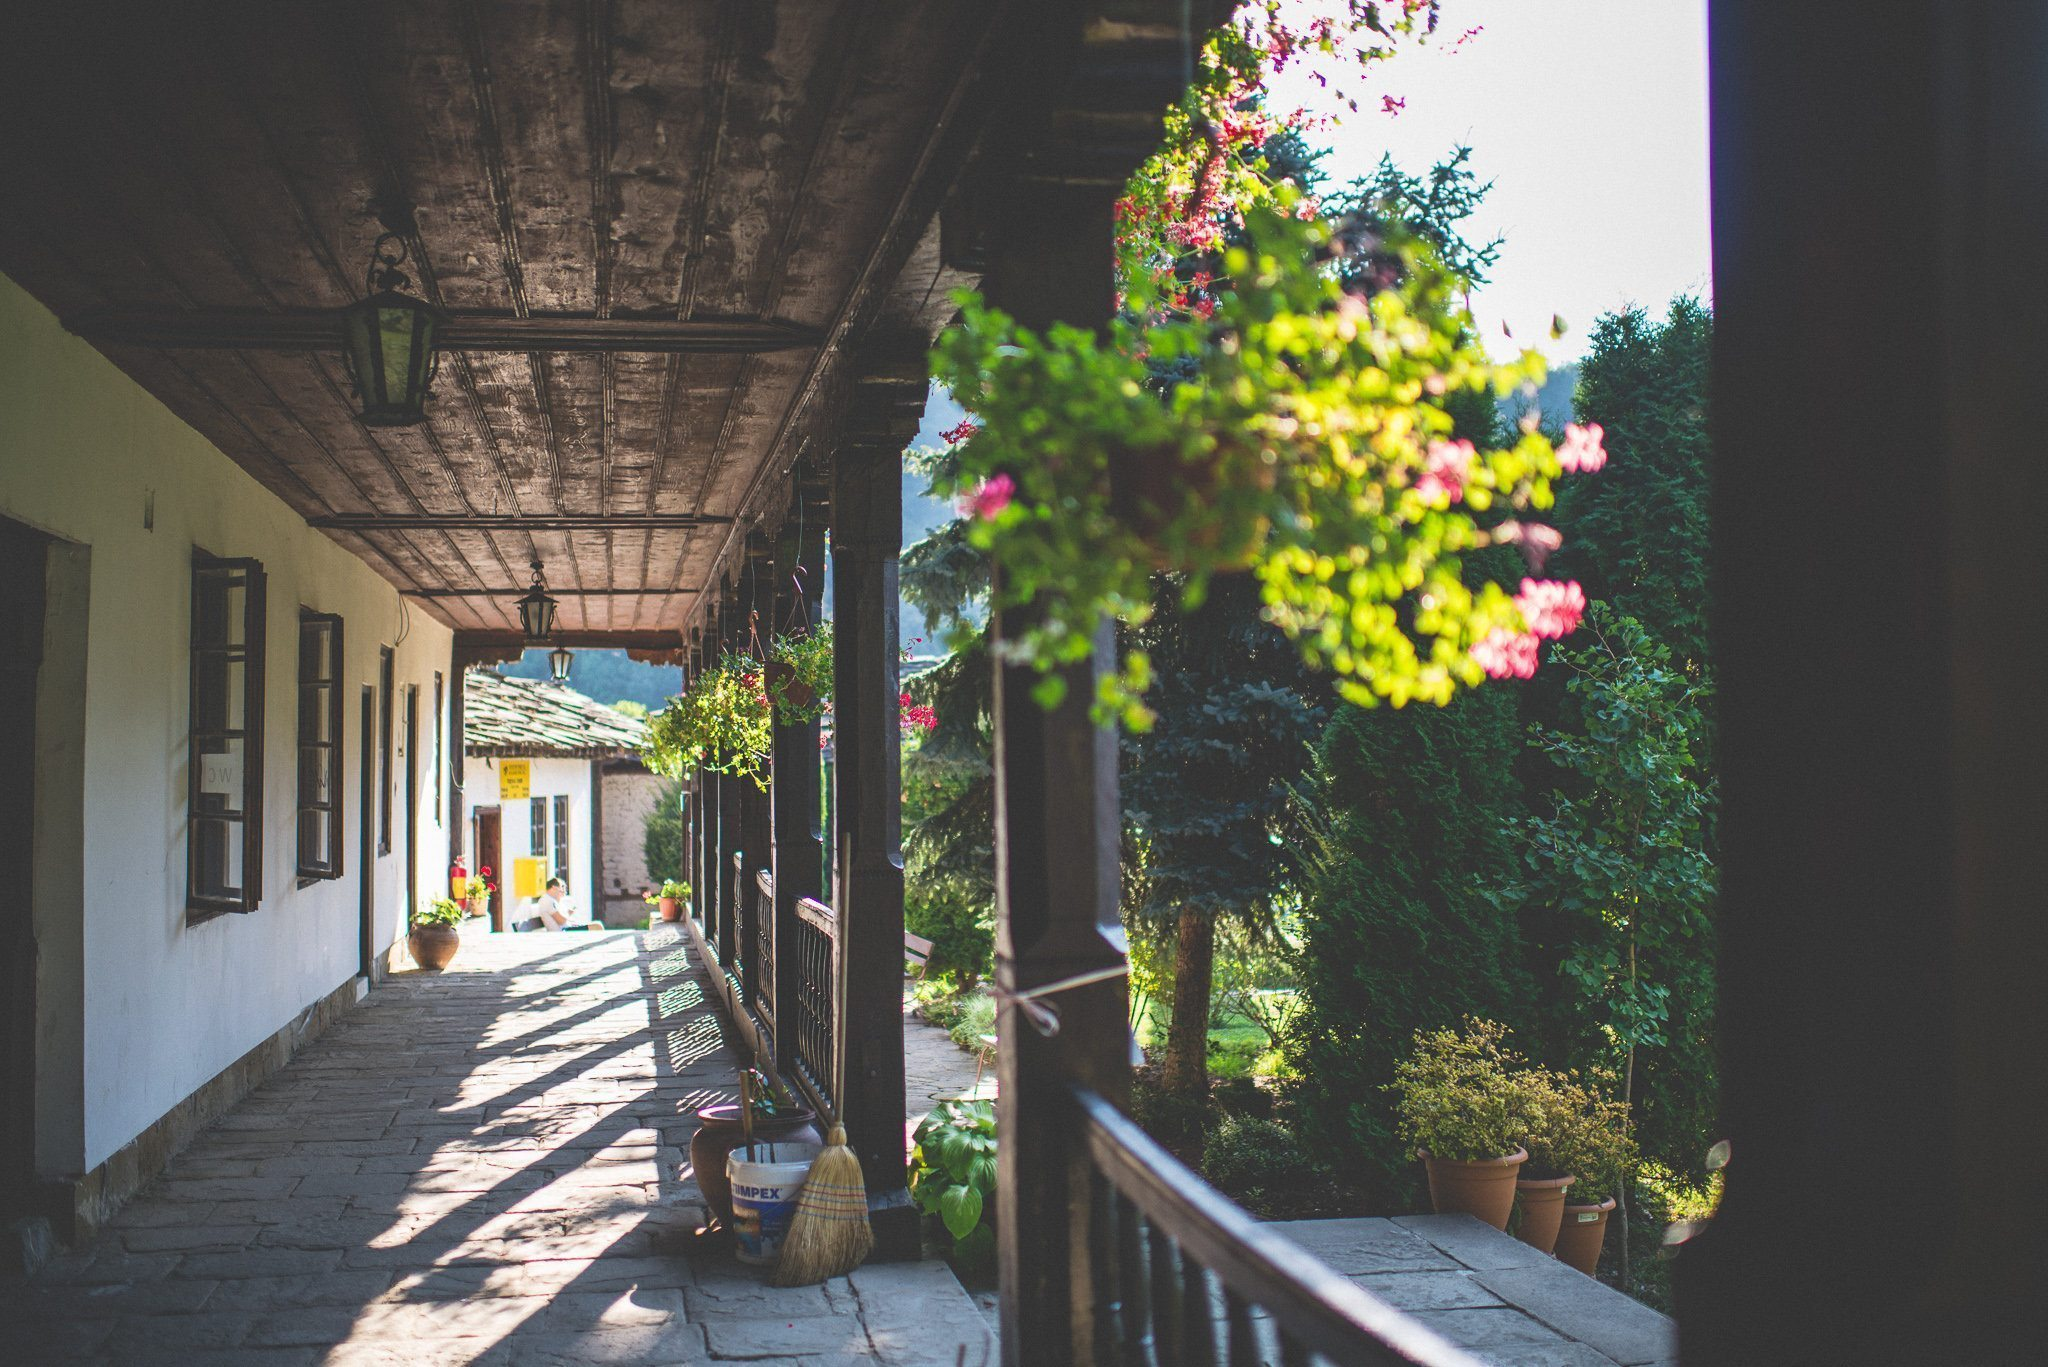 Baskets of flowers hang along the wooden verandah of the Troyan monastery